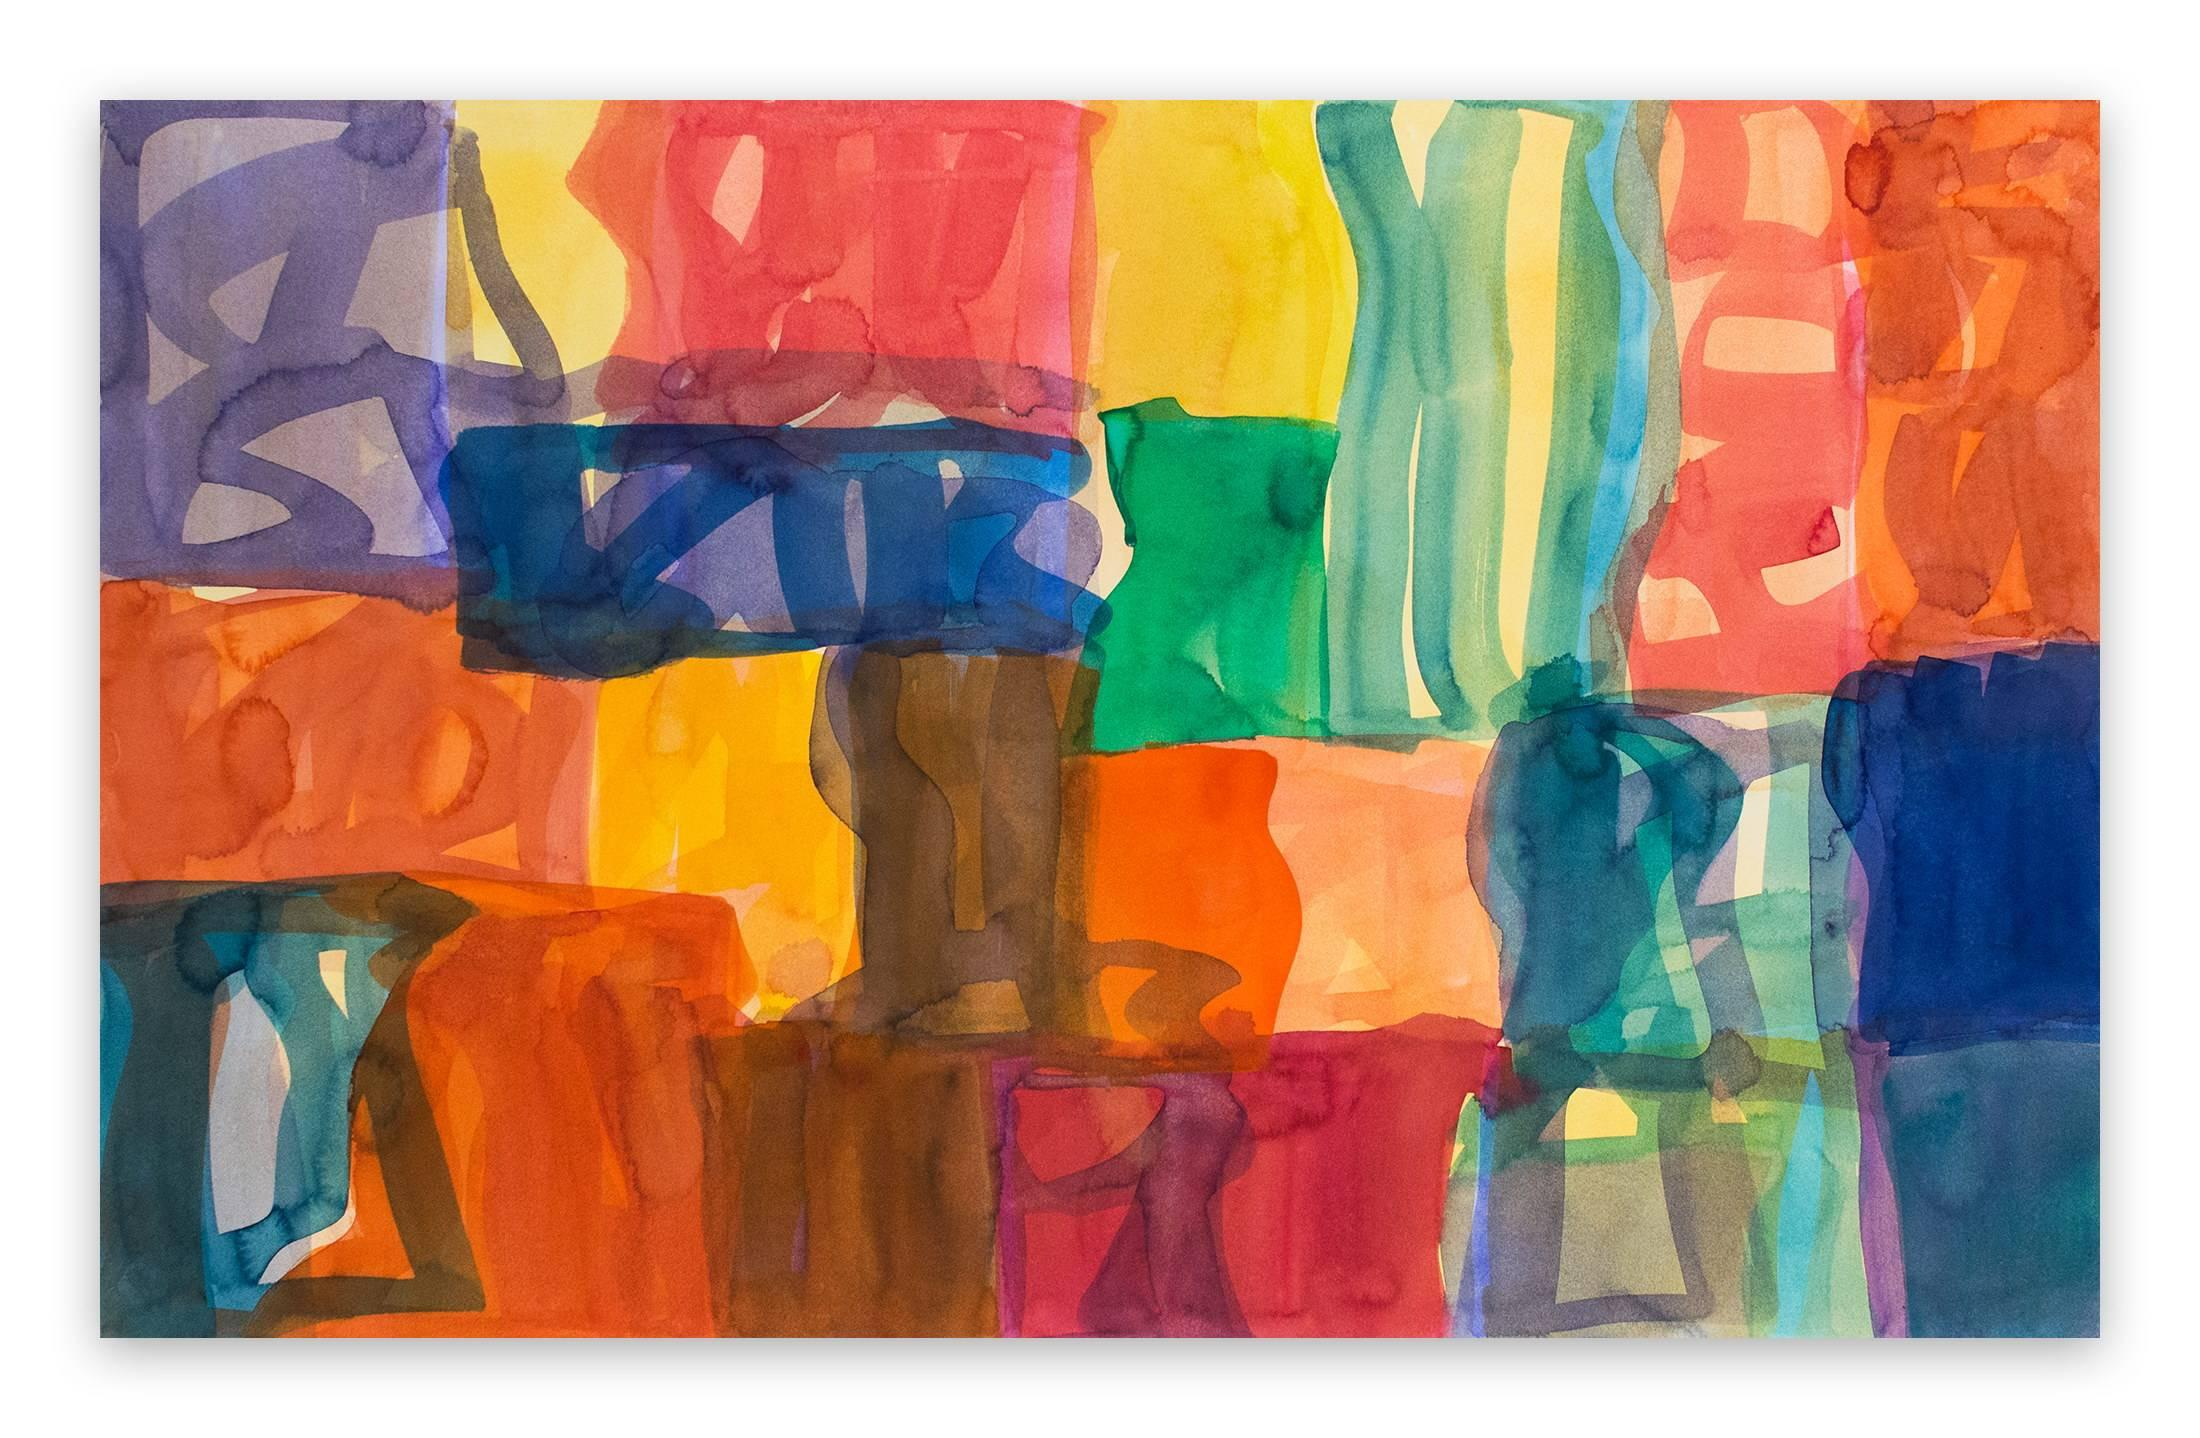 Yaddo B (Abstract Expressionism painting)